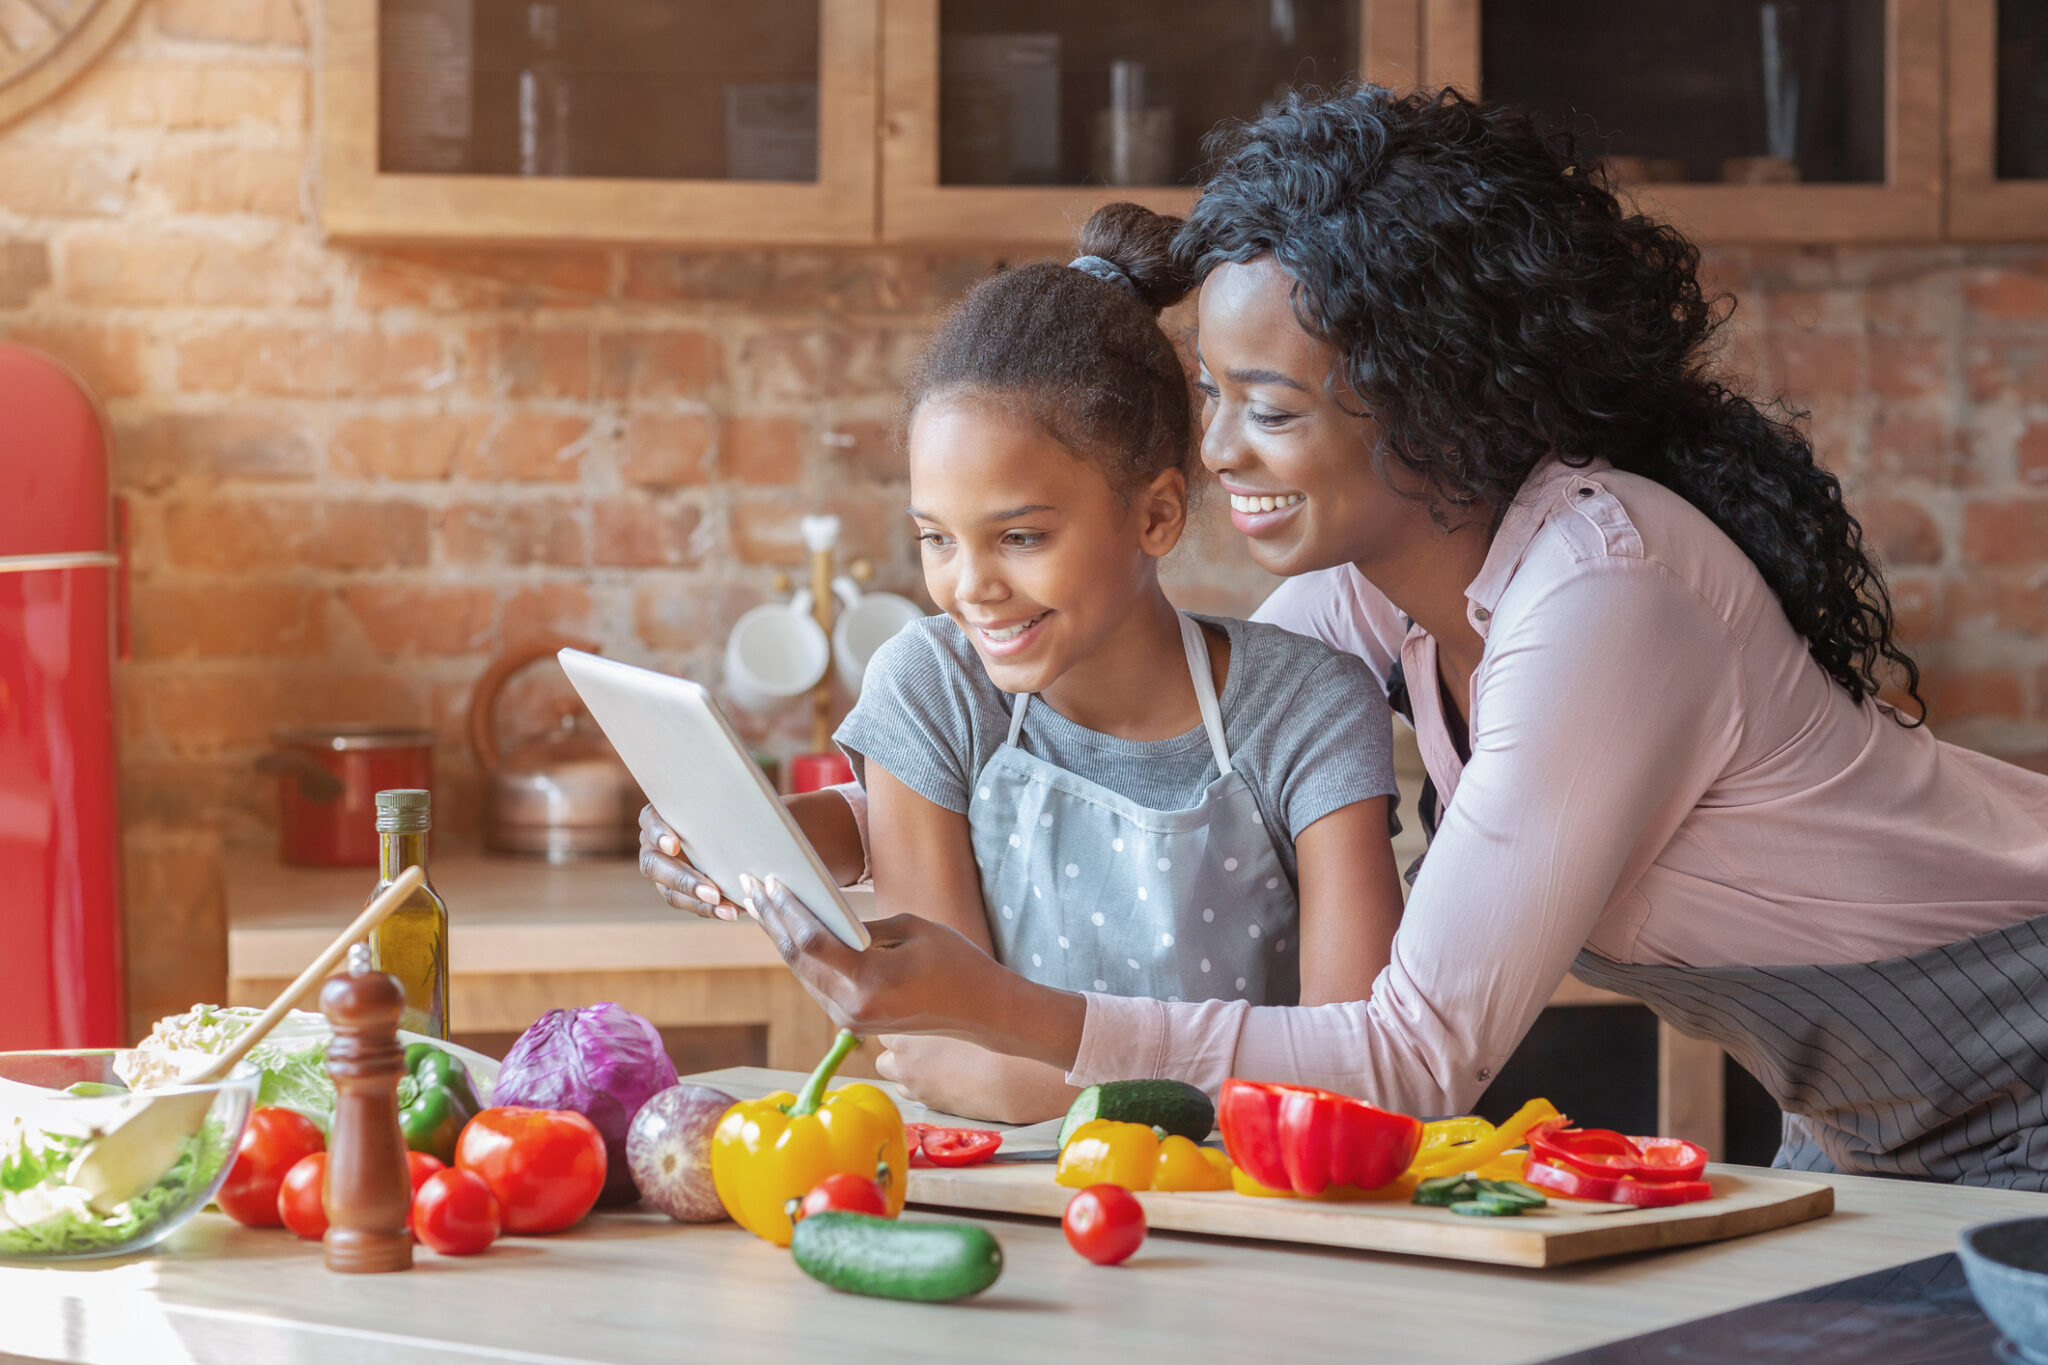 Mommy and daughter reading recipe on tablet at kitchen